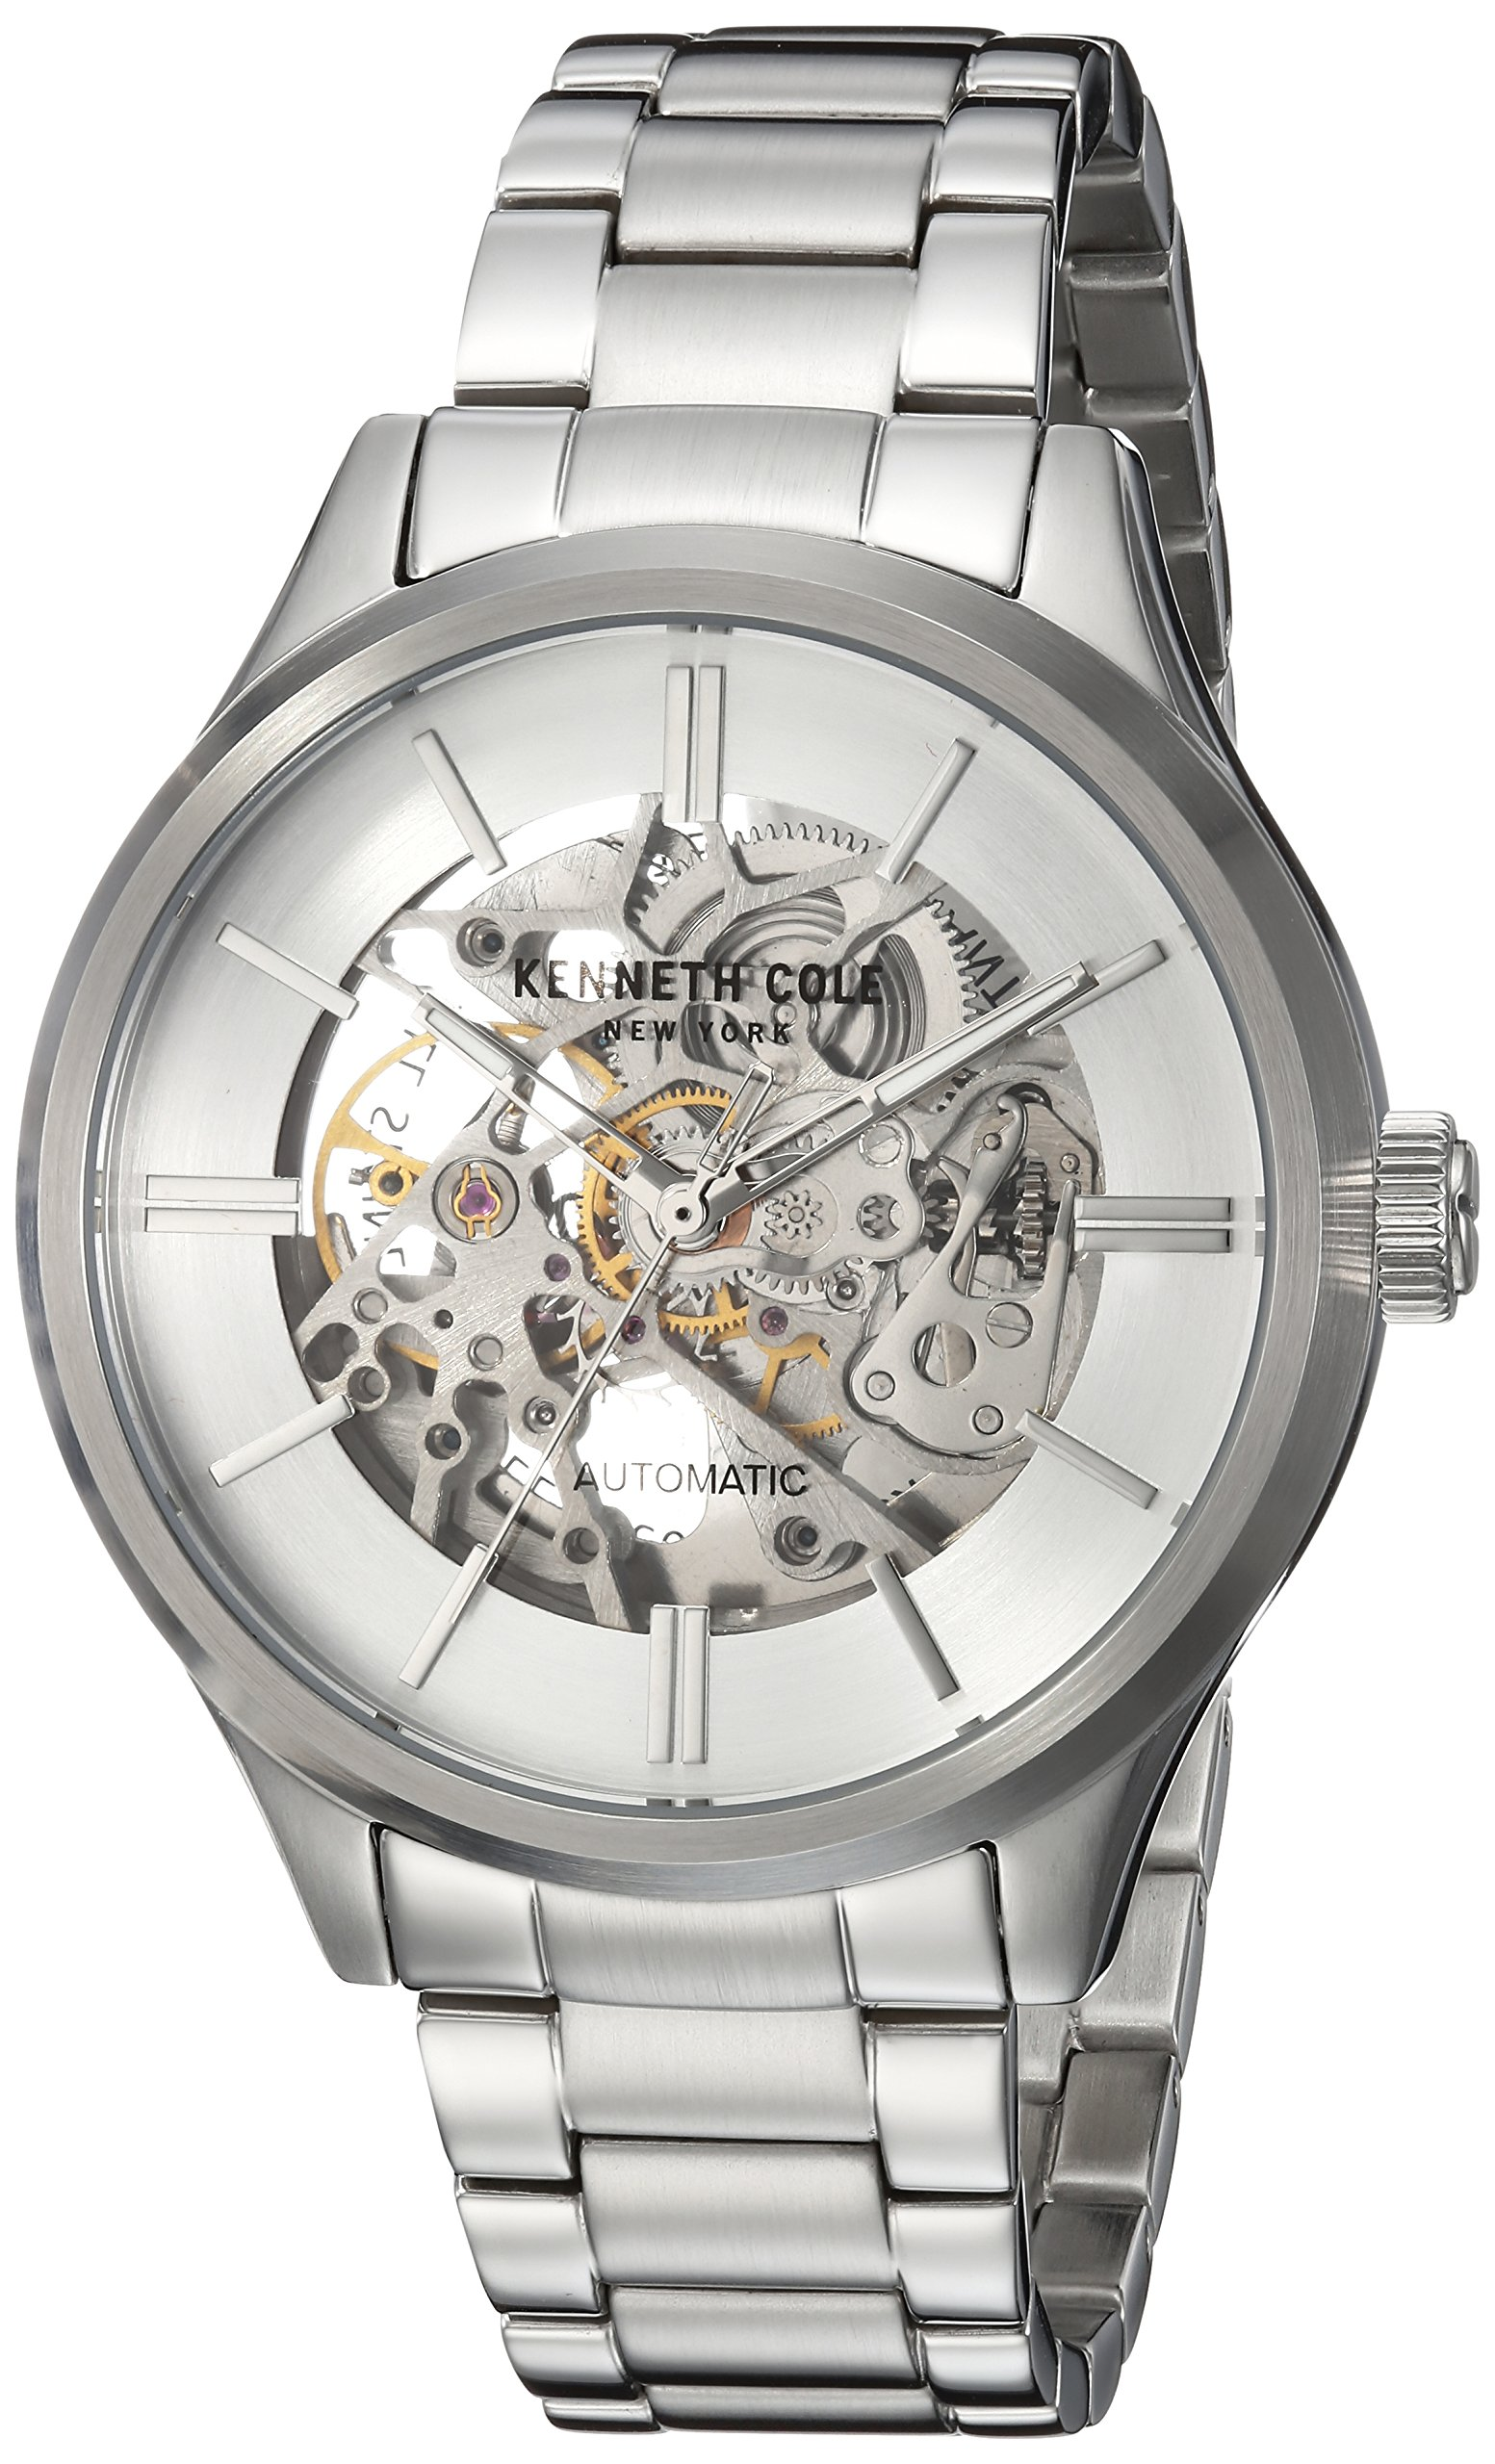 Kenneth Cole New York Men's Automatic Stainless Steel Casual Watch, Color:Silver-Toned (Model: KC15171002) by Kenneth Cole New York